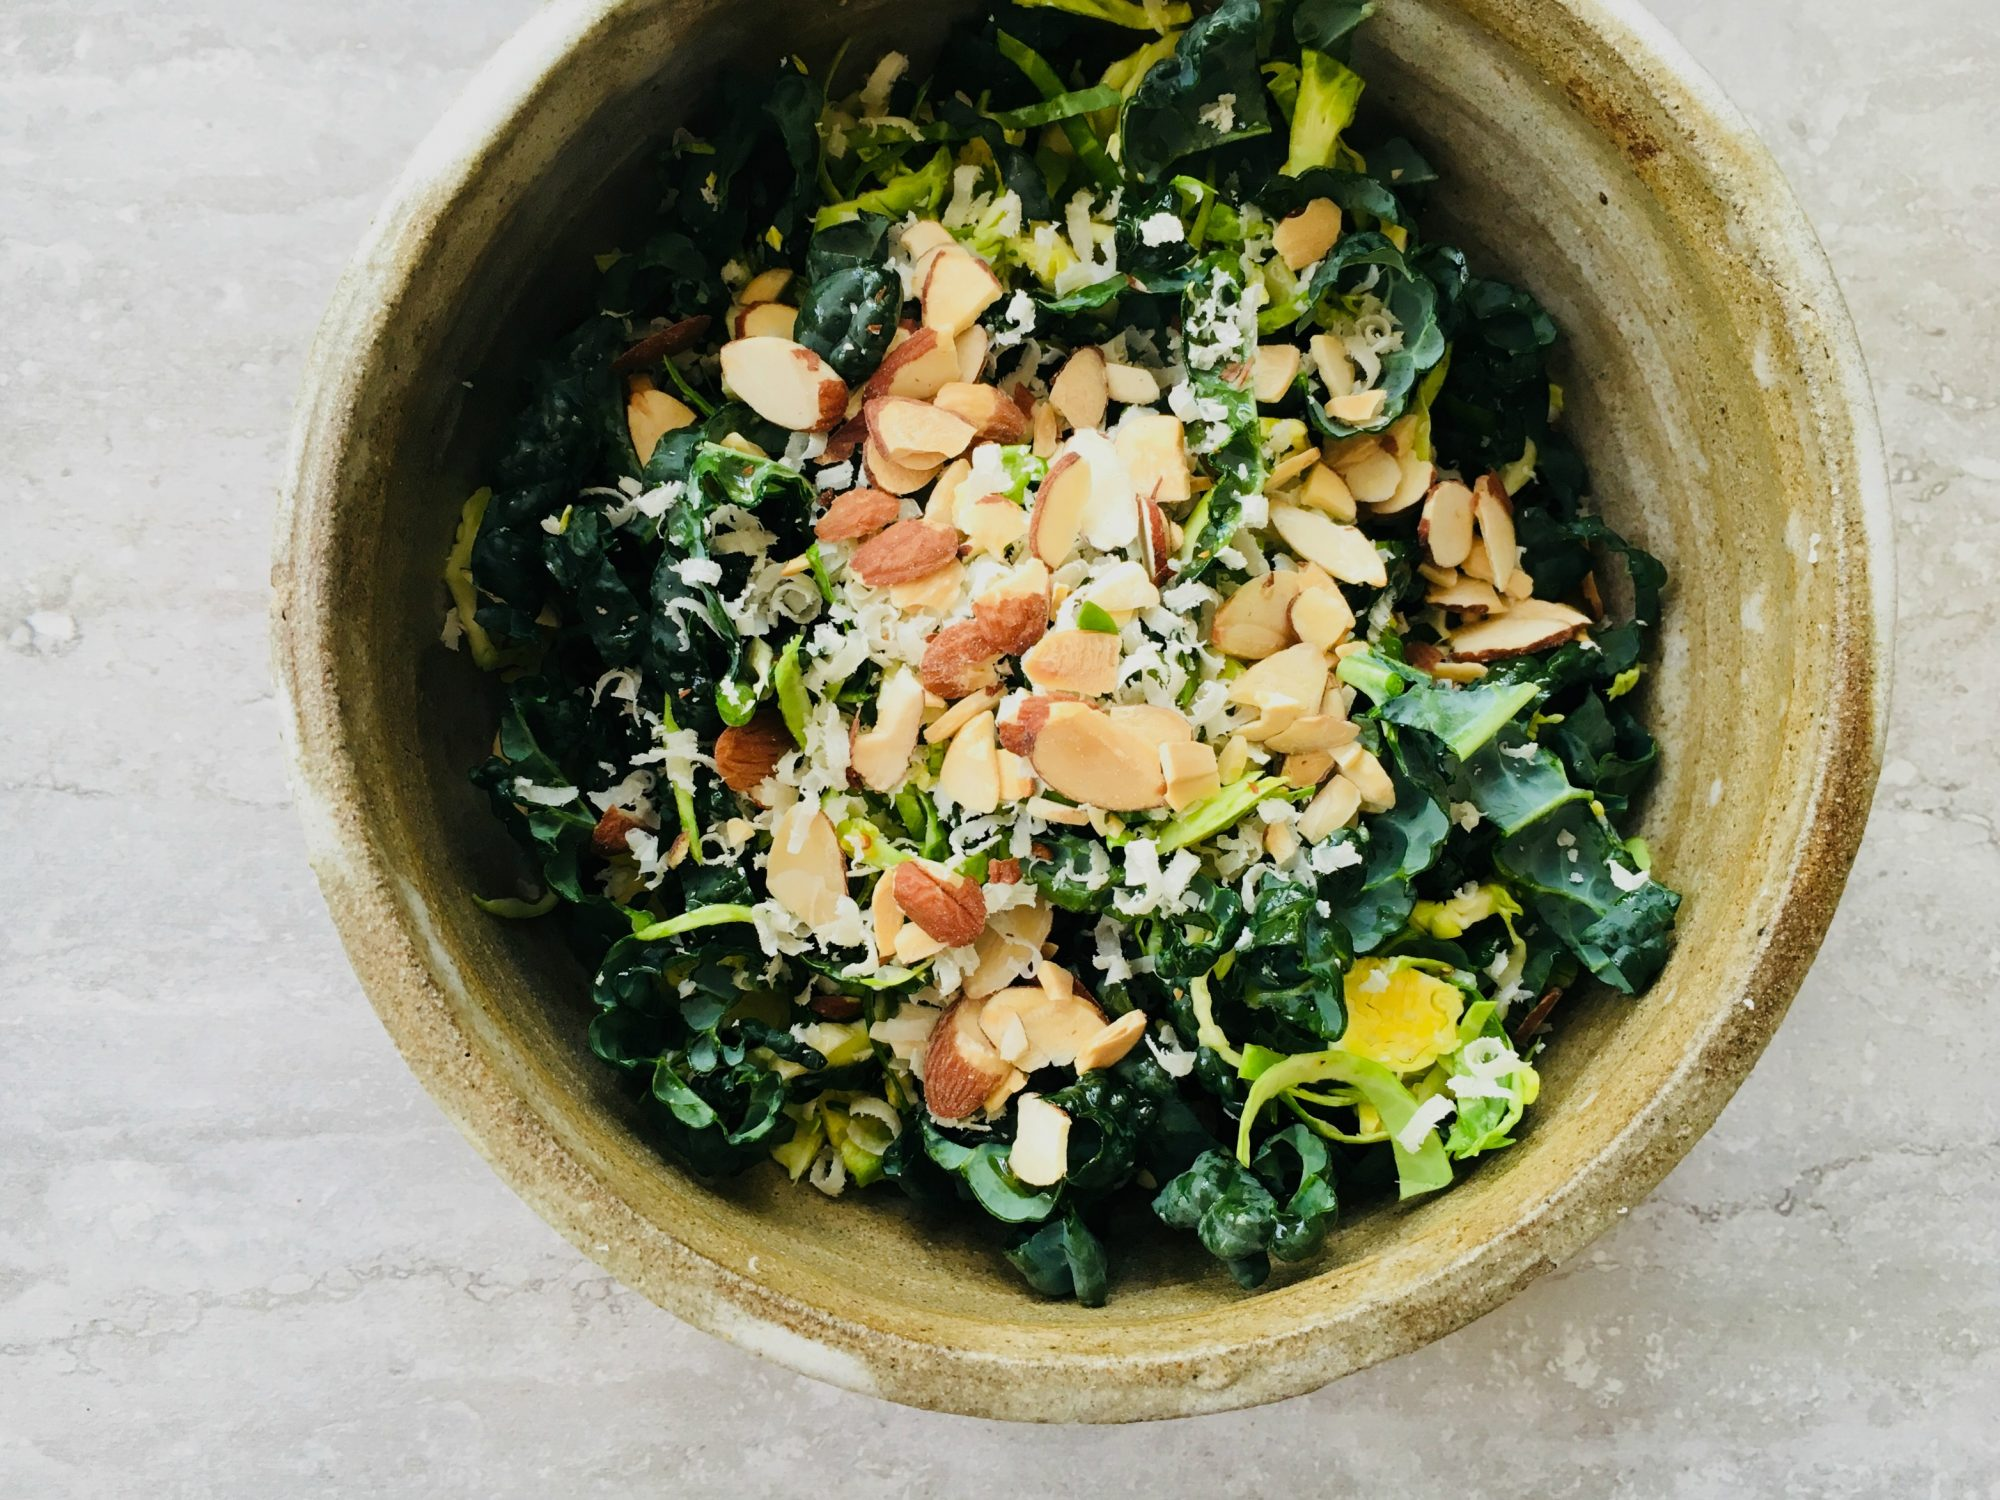 Kale & Brussels sprout salad